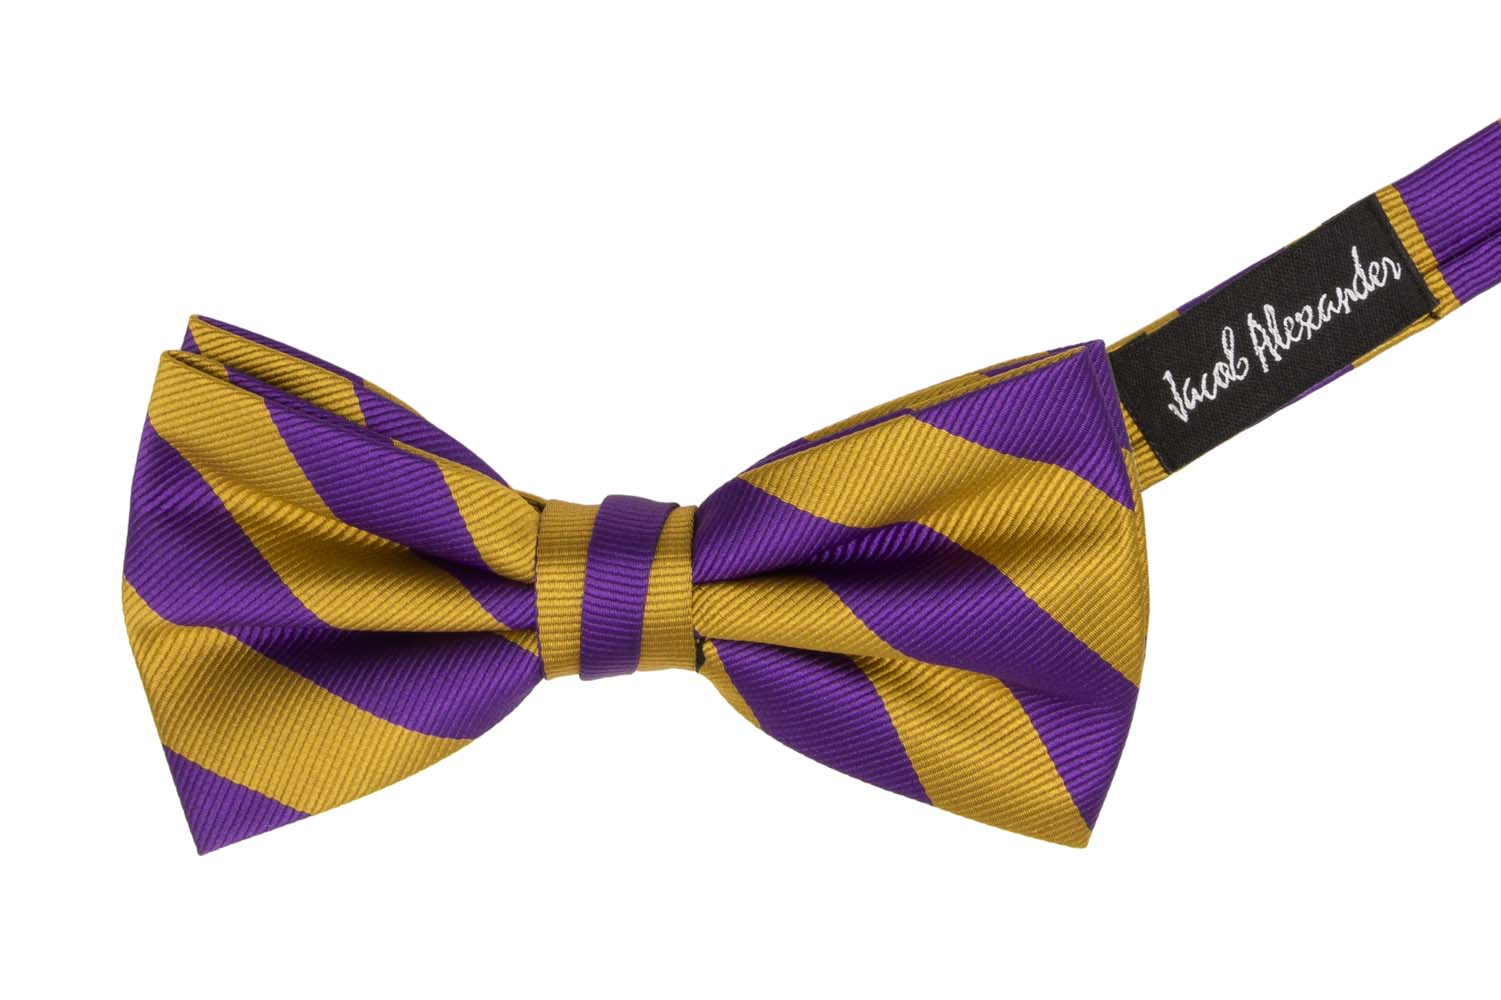 Jacob-Alexander-Stripe-Woven-Men-039-s-College-Striped-Pretied-Bowtie thumbnail 14